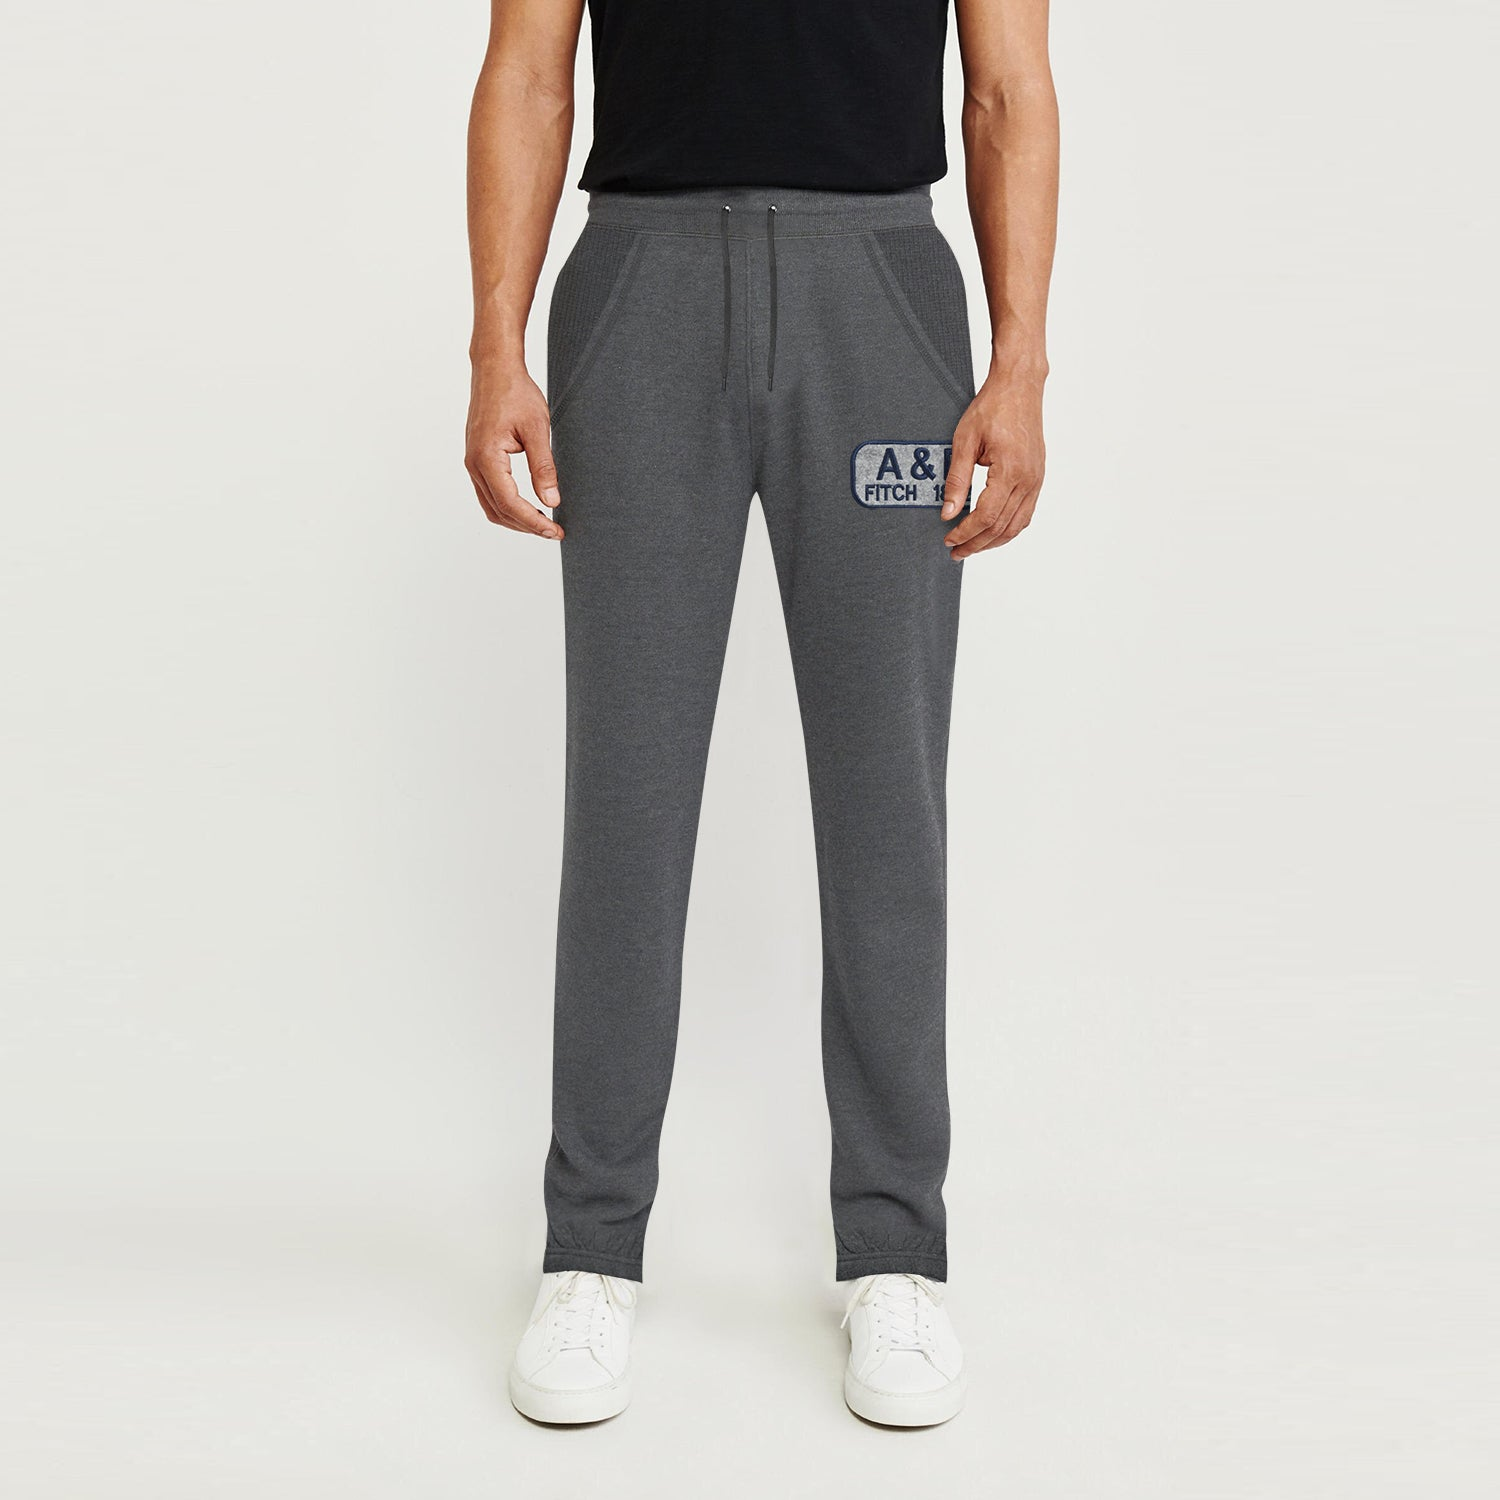 A&F Fleece Navy & Grey Embroidery Slim Fit Gathering Bottom Jogger Trouser For Men-Charcoal Melange-BE9720